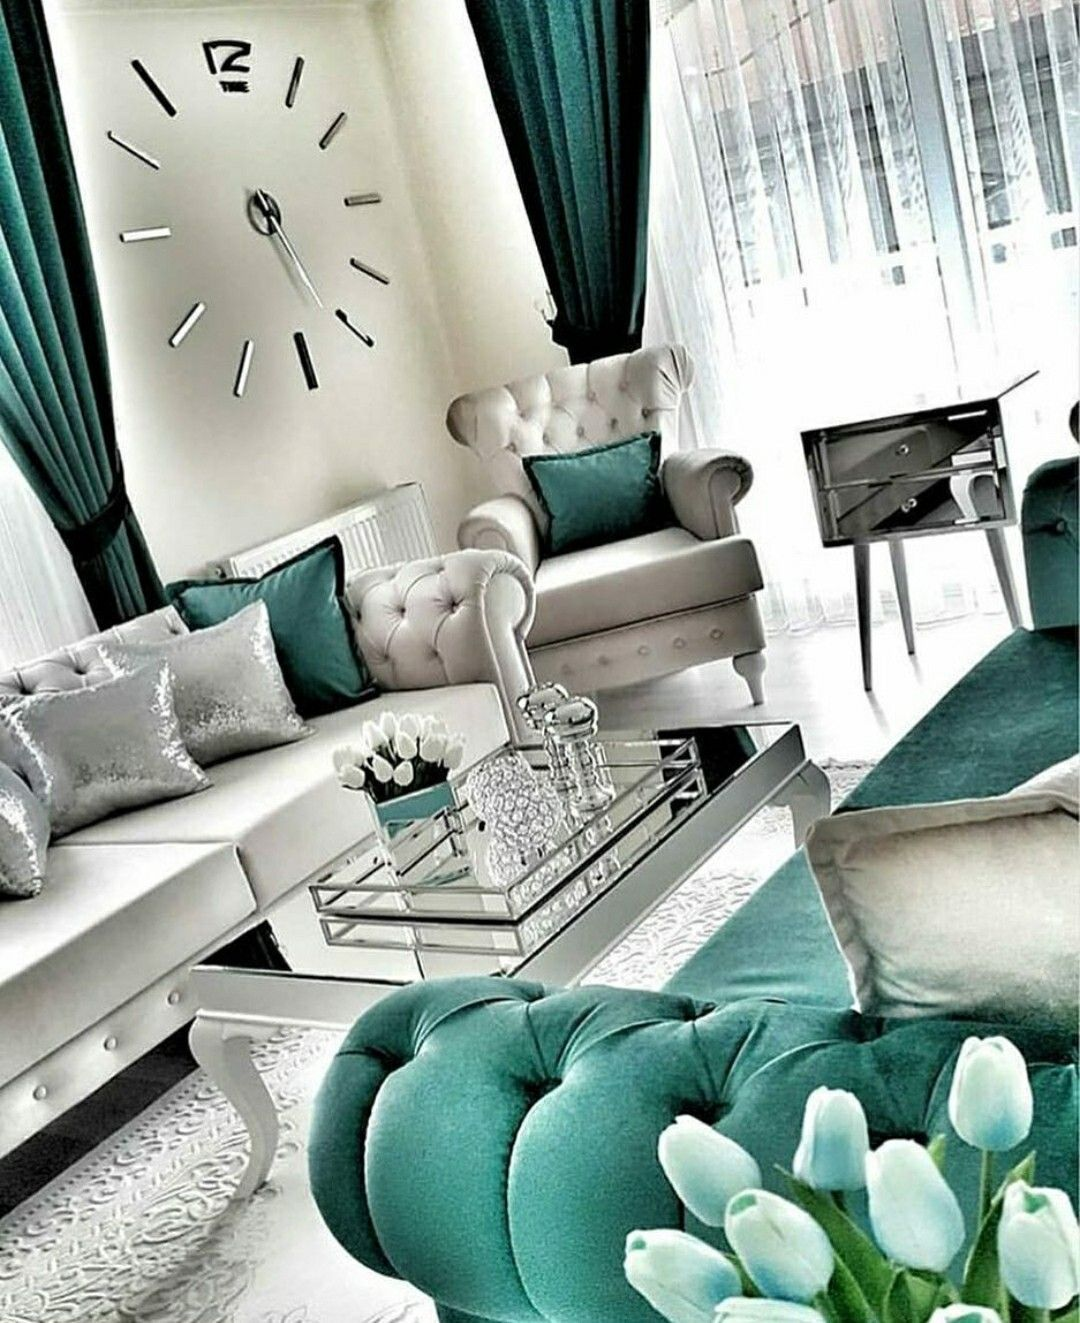 Grey living room and home decor image also best decorations images in decorating rh pinterest